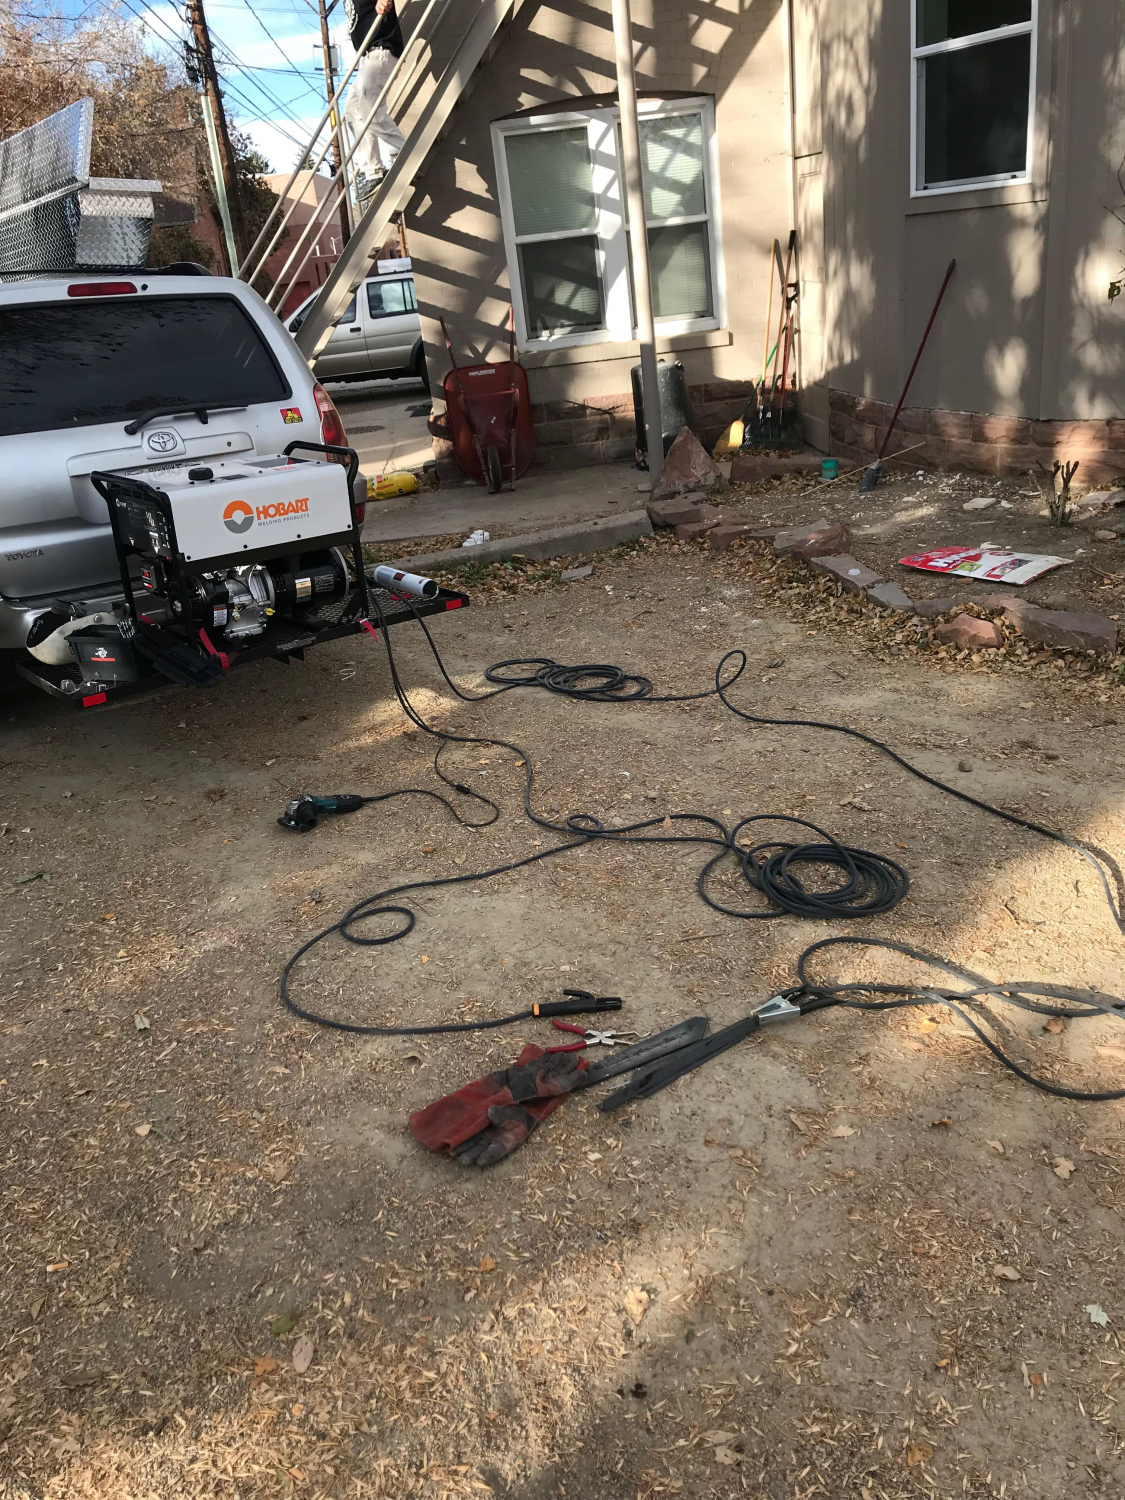 Hobart Champion 145 Welder 500563 Have A Horsepower Briggs And Stratton Engine That Was The Miller Bluestar Is Nice Comparable Machine But Its Way More Only Real Difference Kohler Also Has Coils